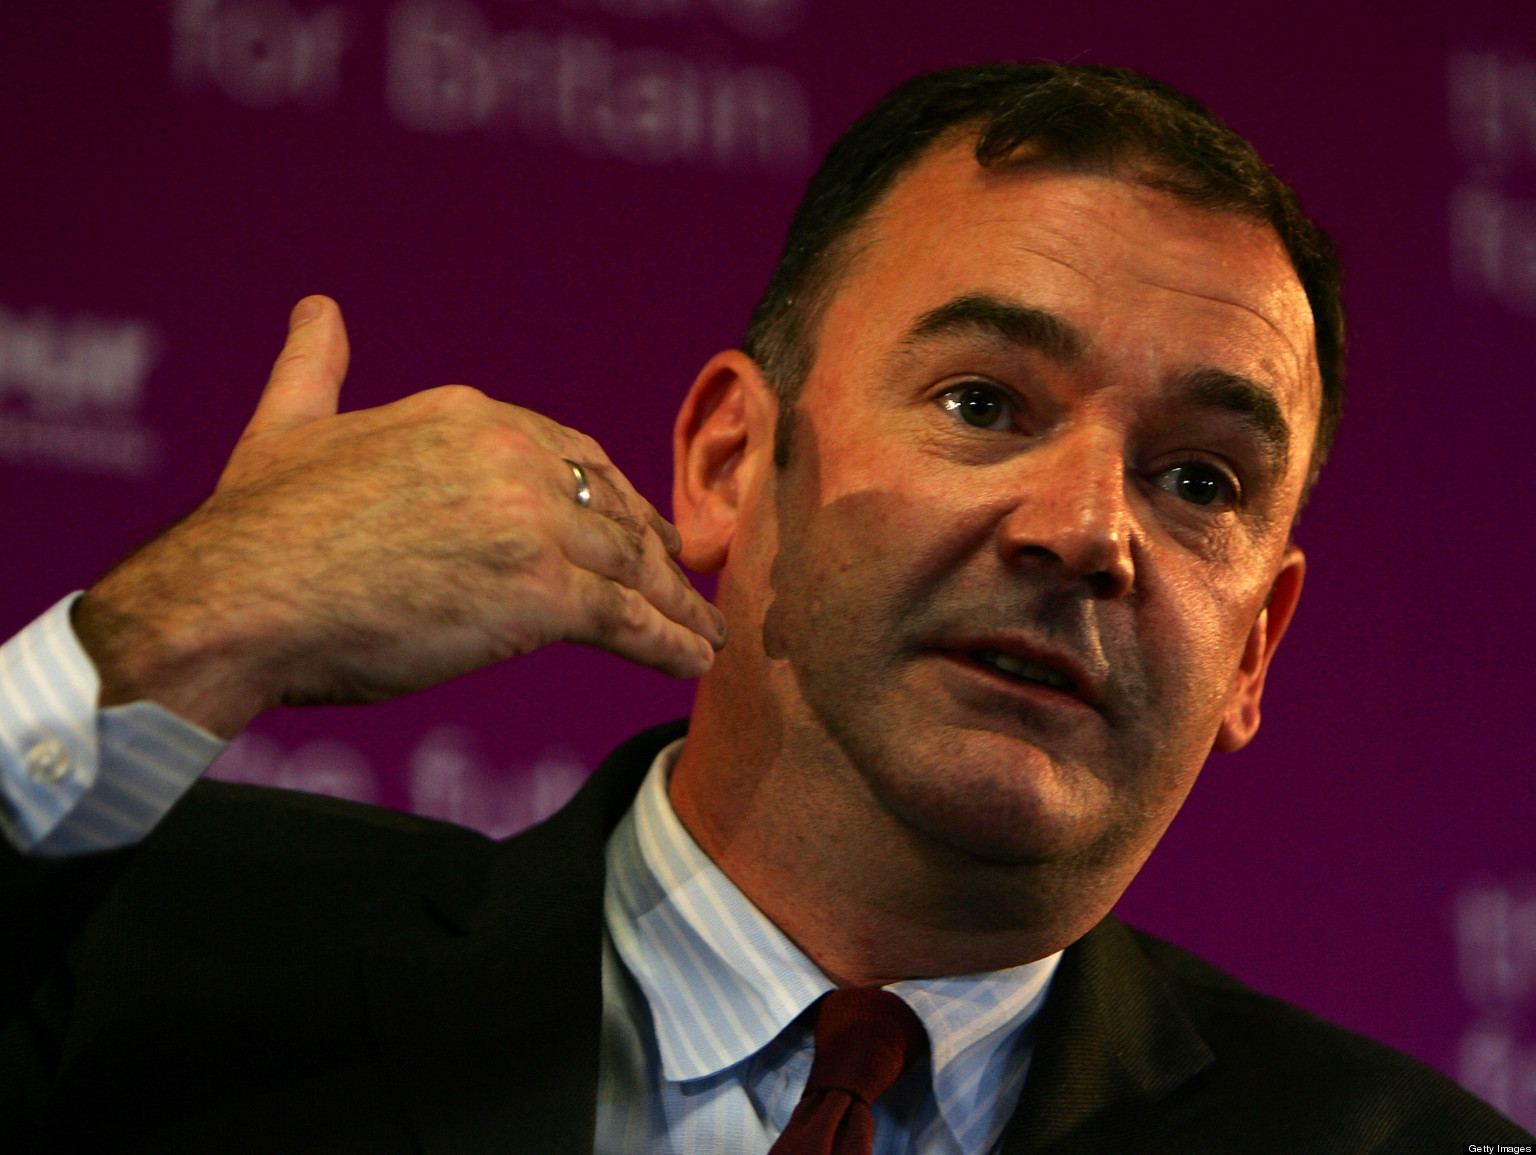 Labour Could Ban Adverts Targeted At Kids, Says Cruddas